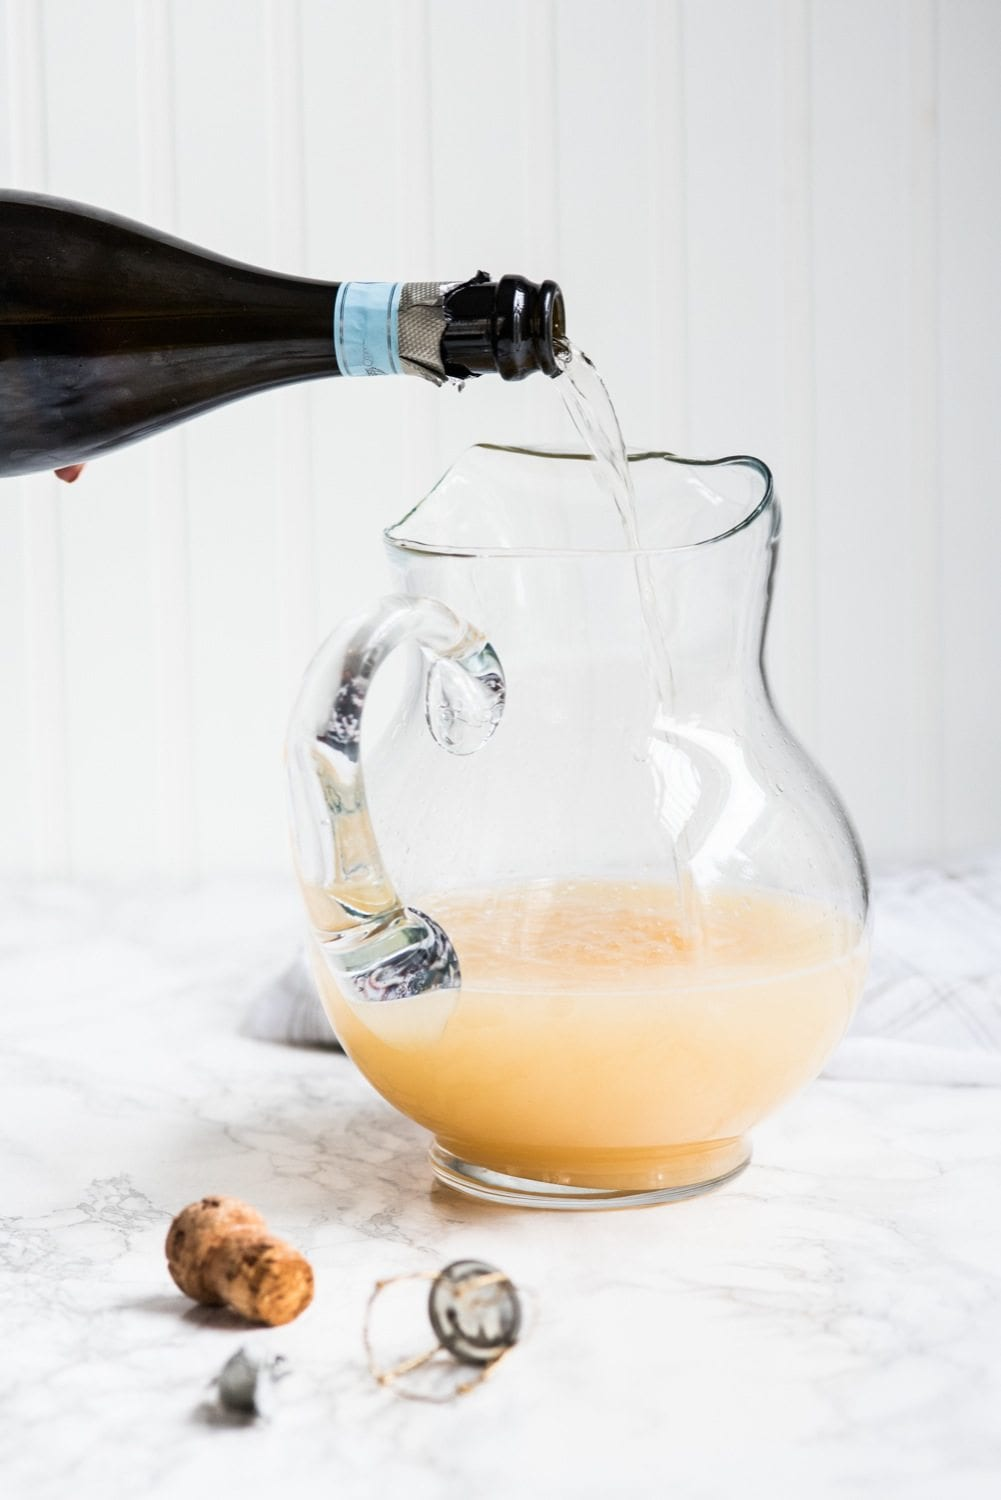 Fizzy Spiked Pear Punch Champagne Cocktail | Cocktail recipes, entertaining ideas, party recipes, party ideas and more from @cydconverse